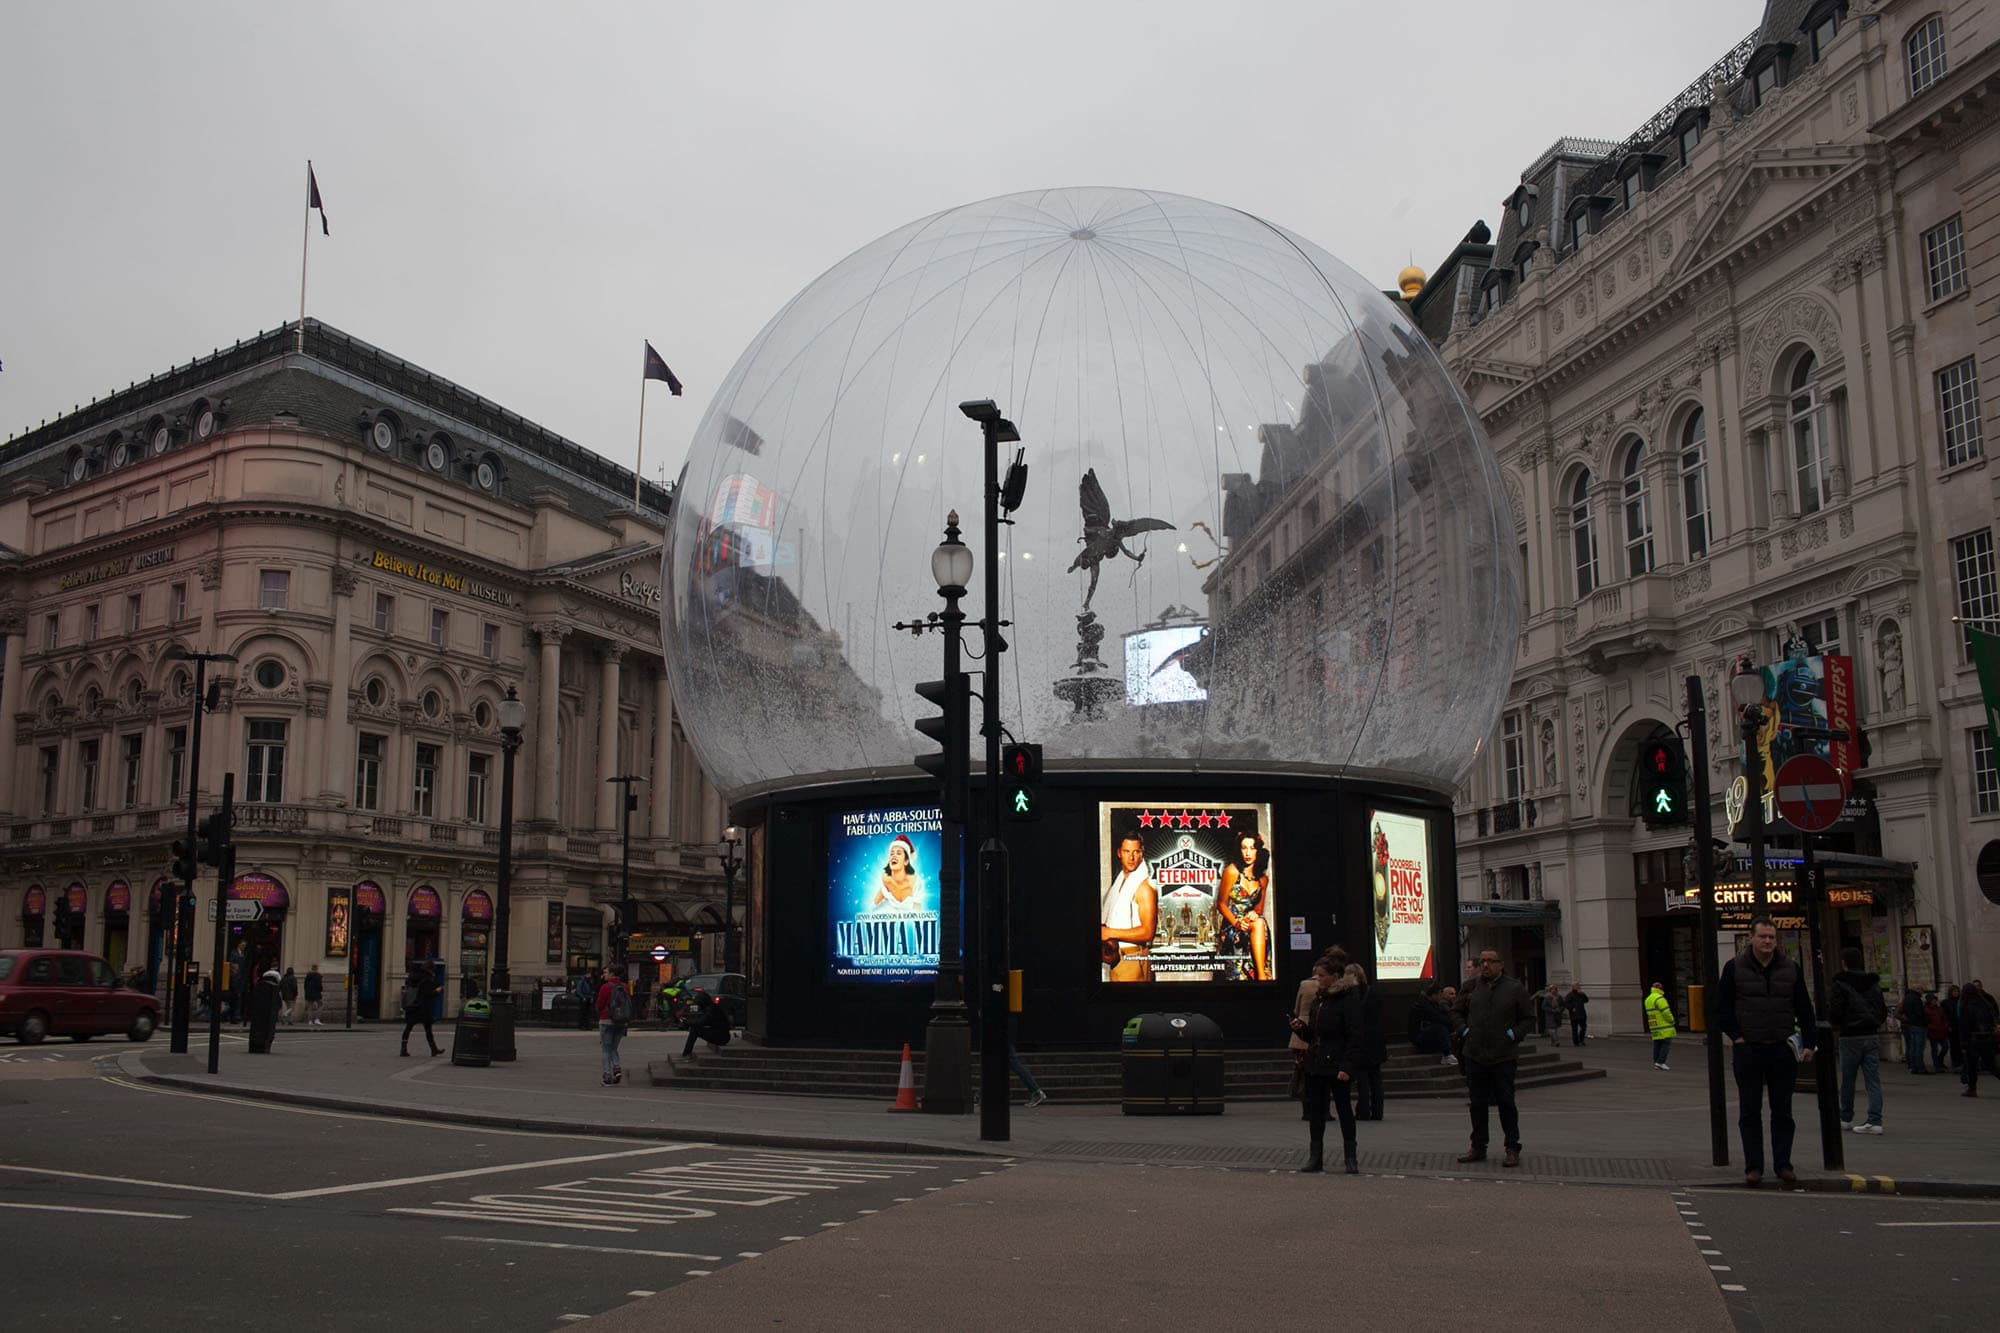 Snow Globe at Piccadilly Circus in London, England